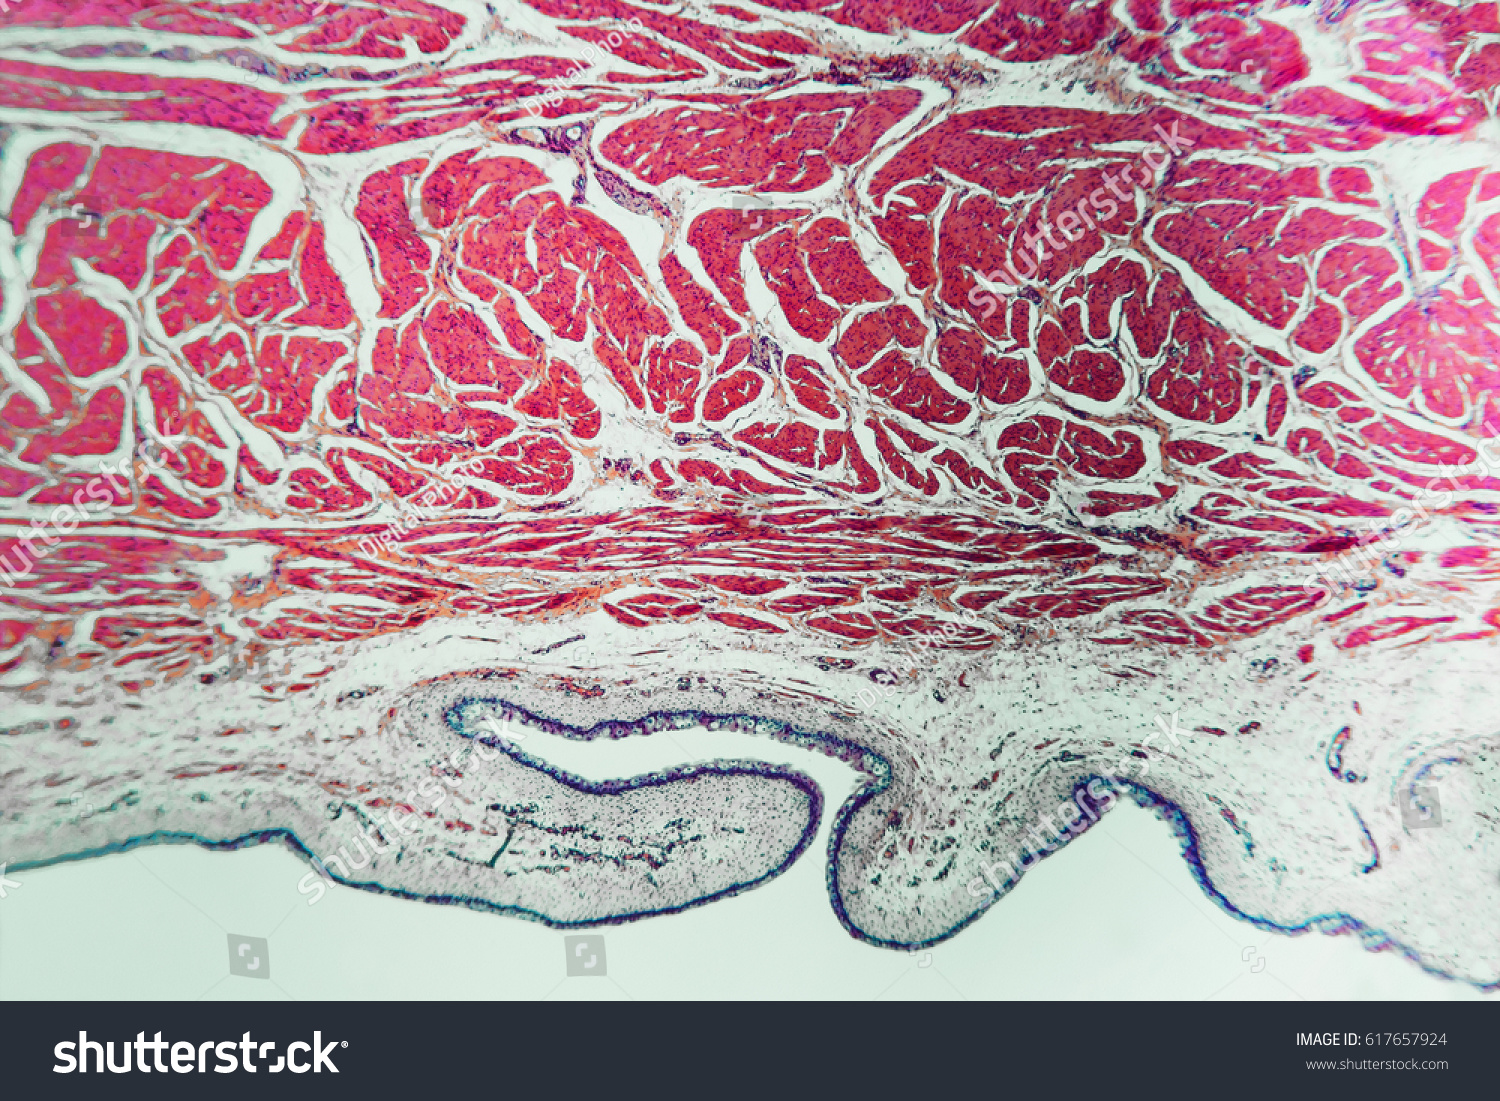 Medical Anatomy Bladder Cat Abstract Science Stock Photo Edit Now